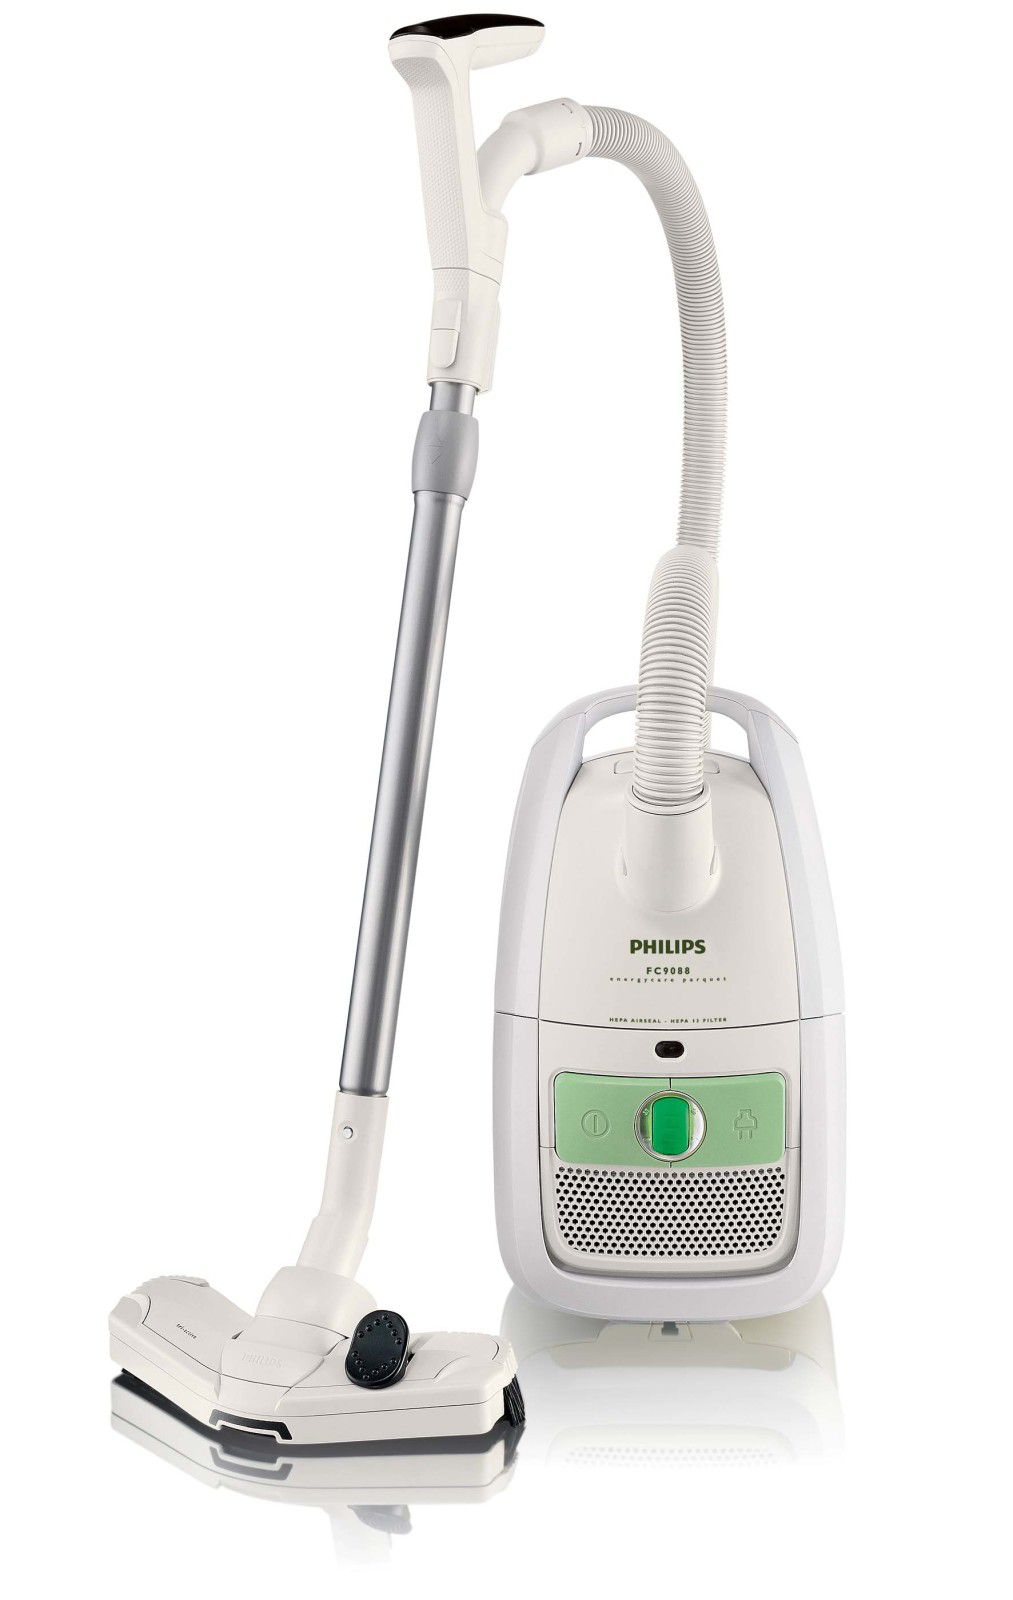 Le nouvel aspirateur green de philips le studio fc9088 green girls - Aspirateur de table philips ...